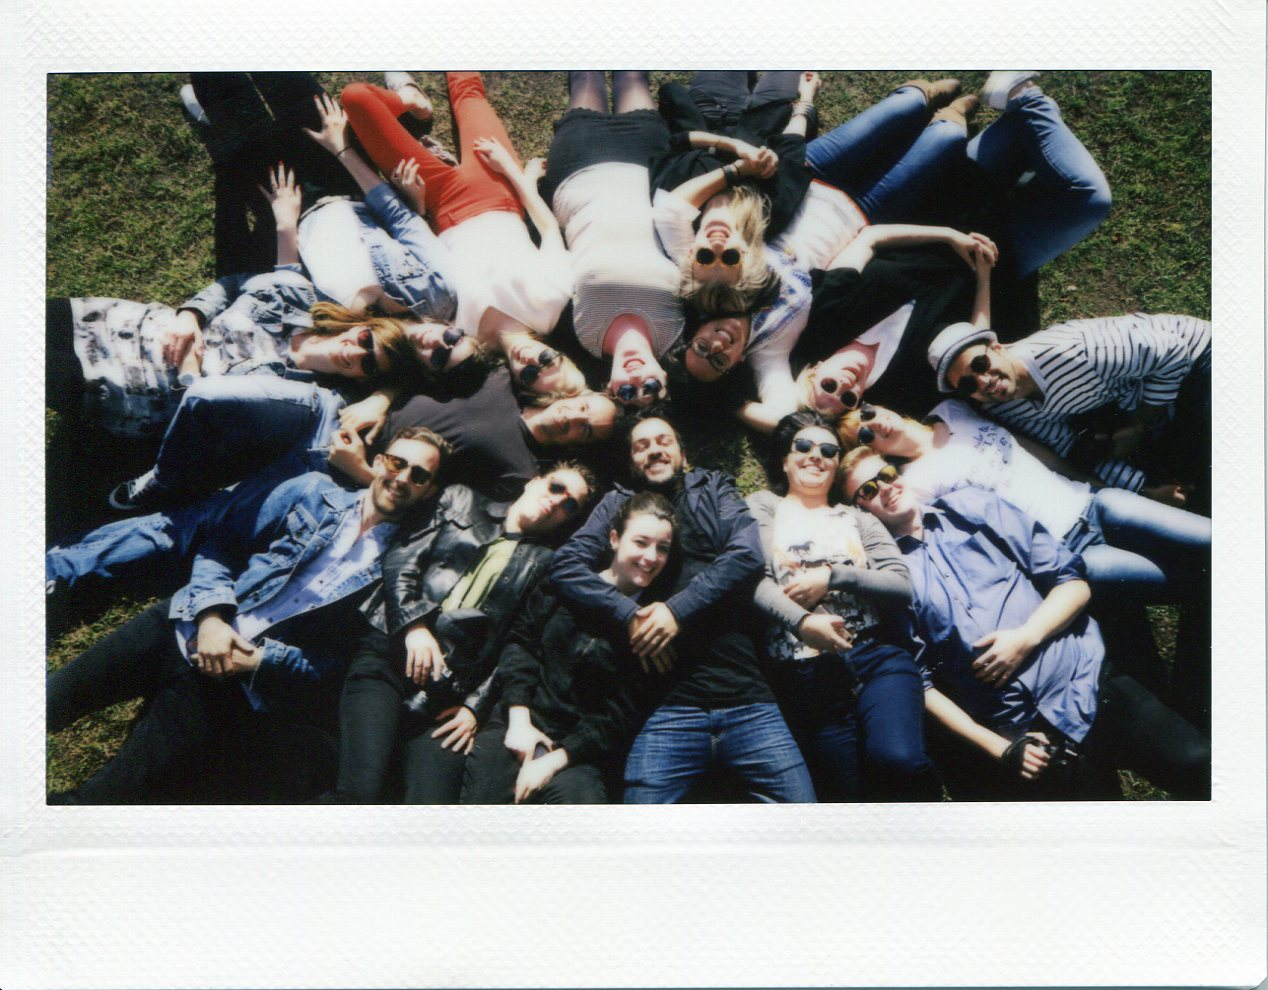 Group photo at Fairmont. Captured on polaroid by Mankica